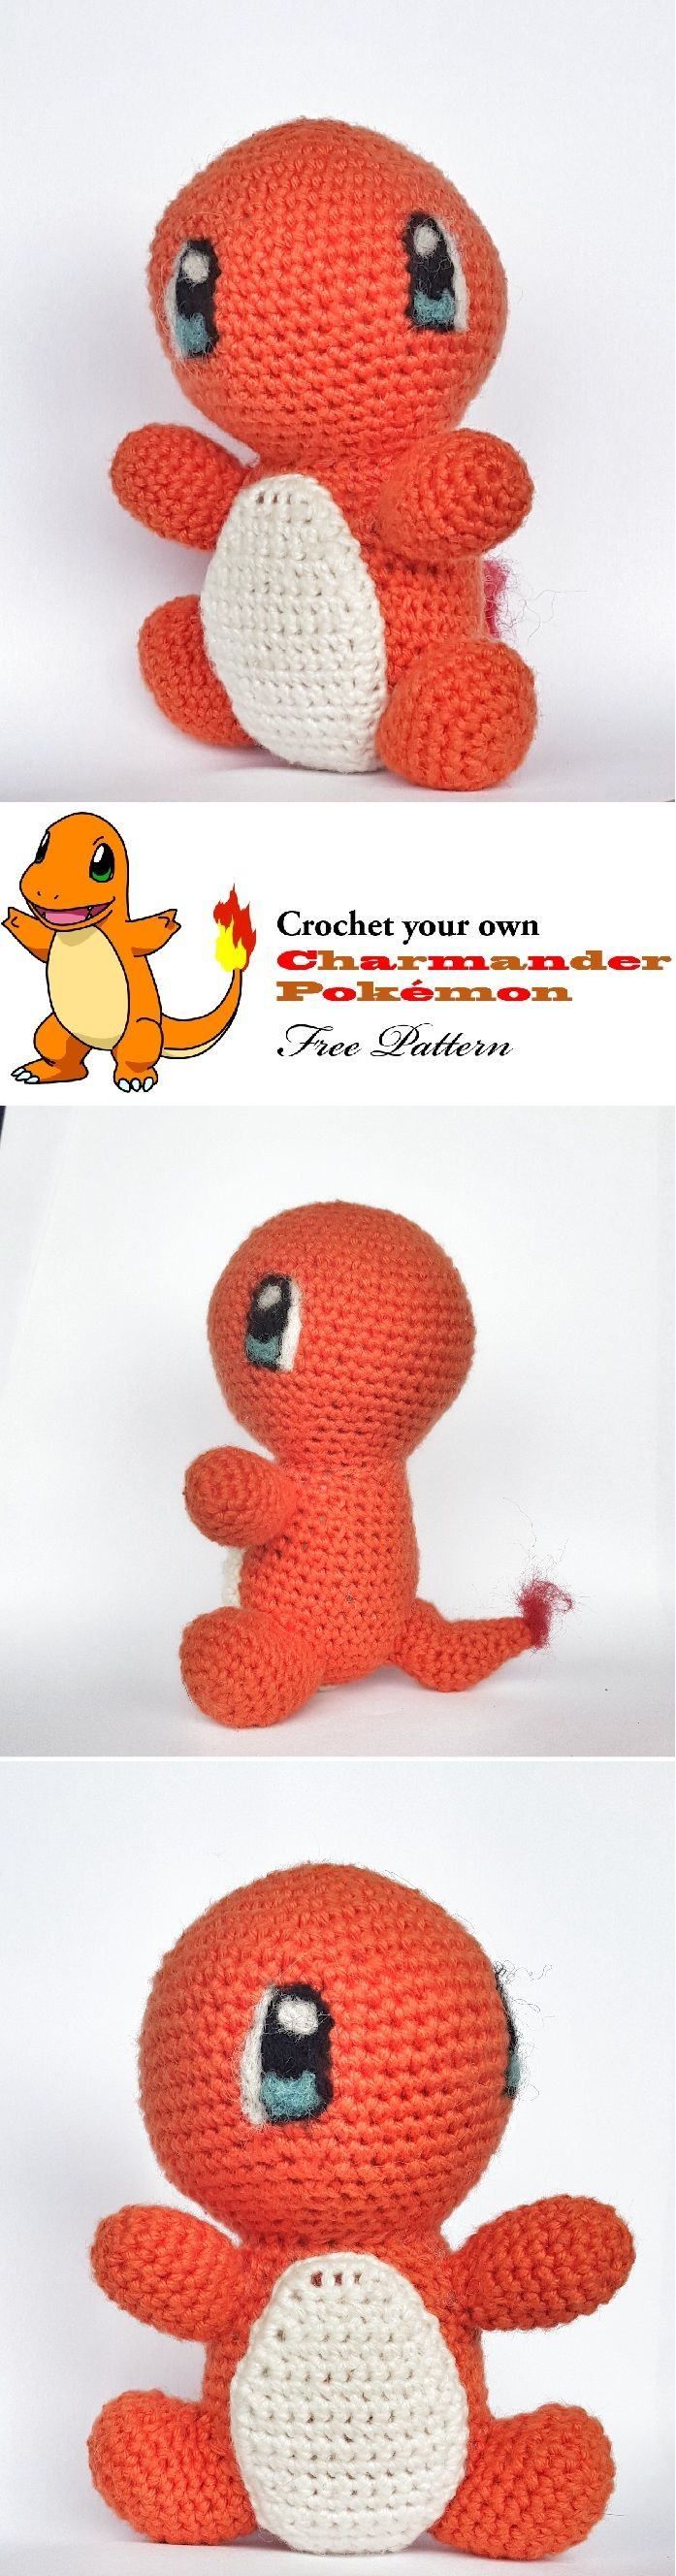 Free Cute Charmander Amigurumi Crochet pattern. More at www.sarafromwonderland.com